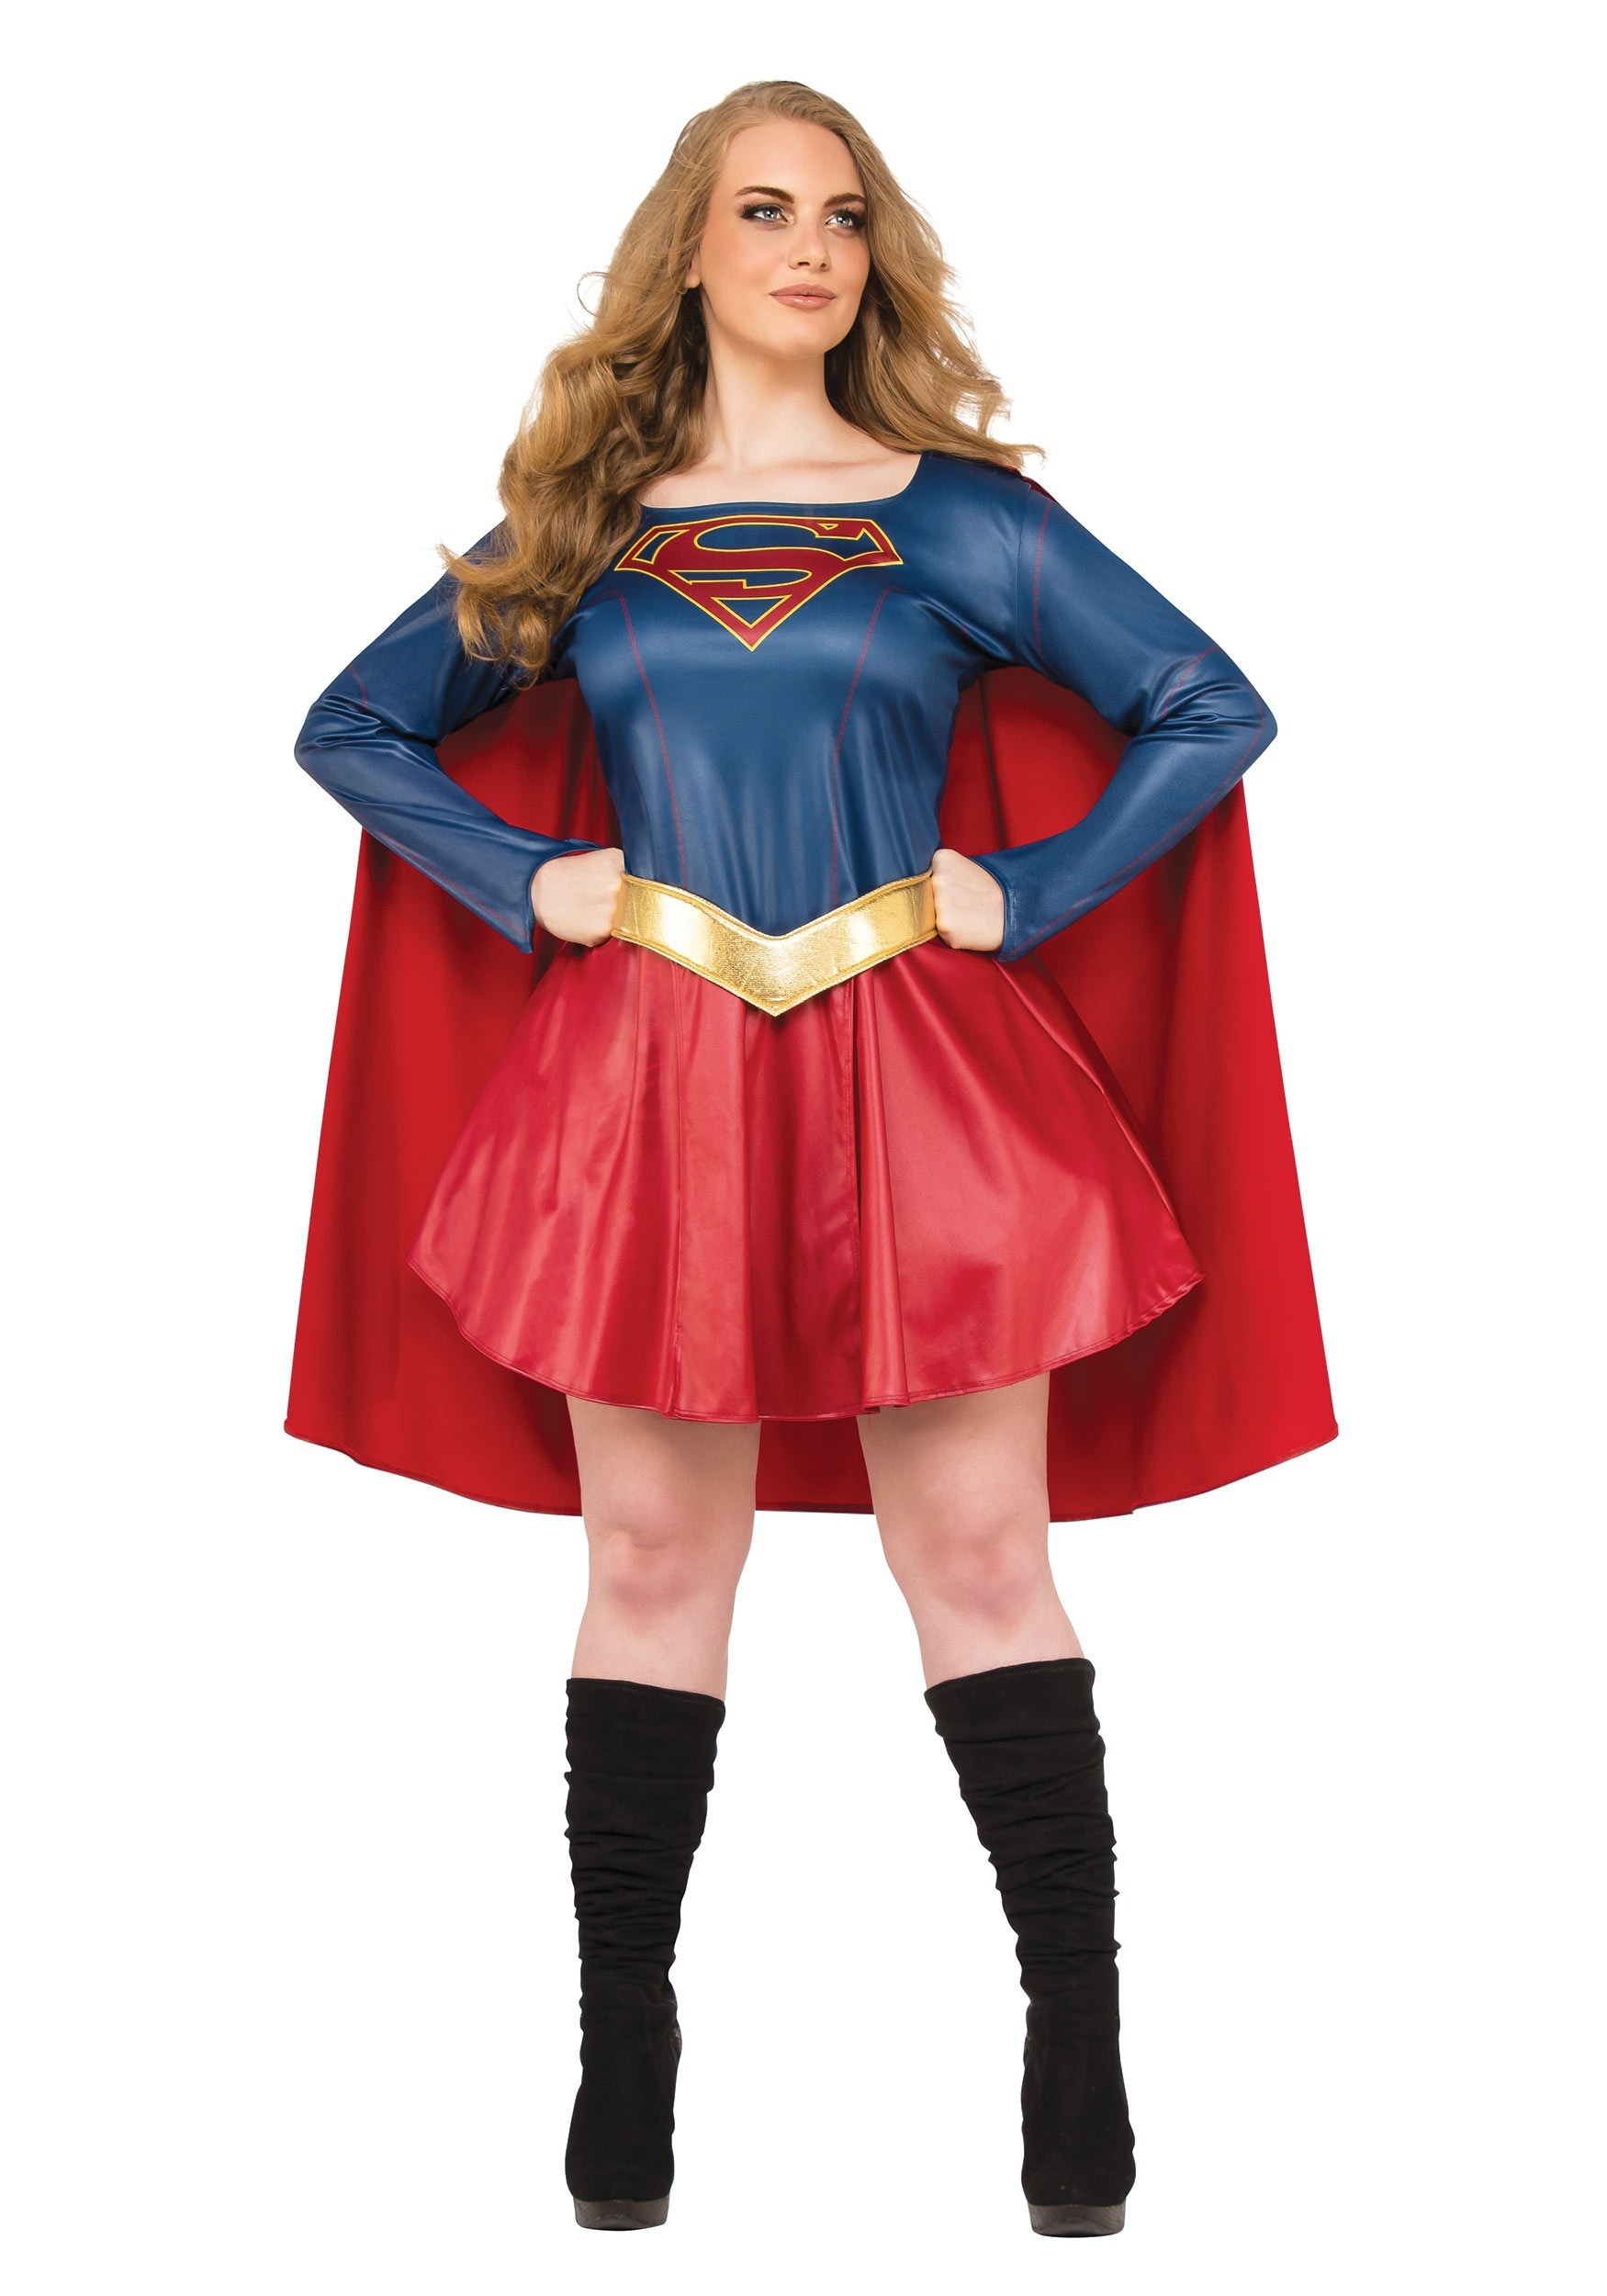 Plus Size Halloween Costumes HalloweenCostumes